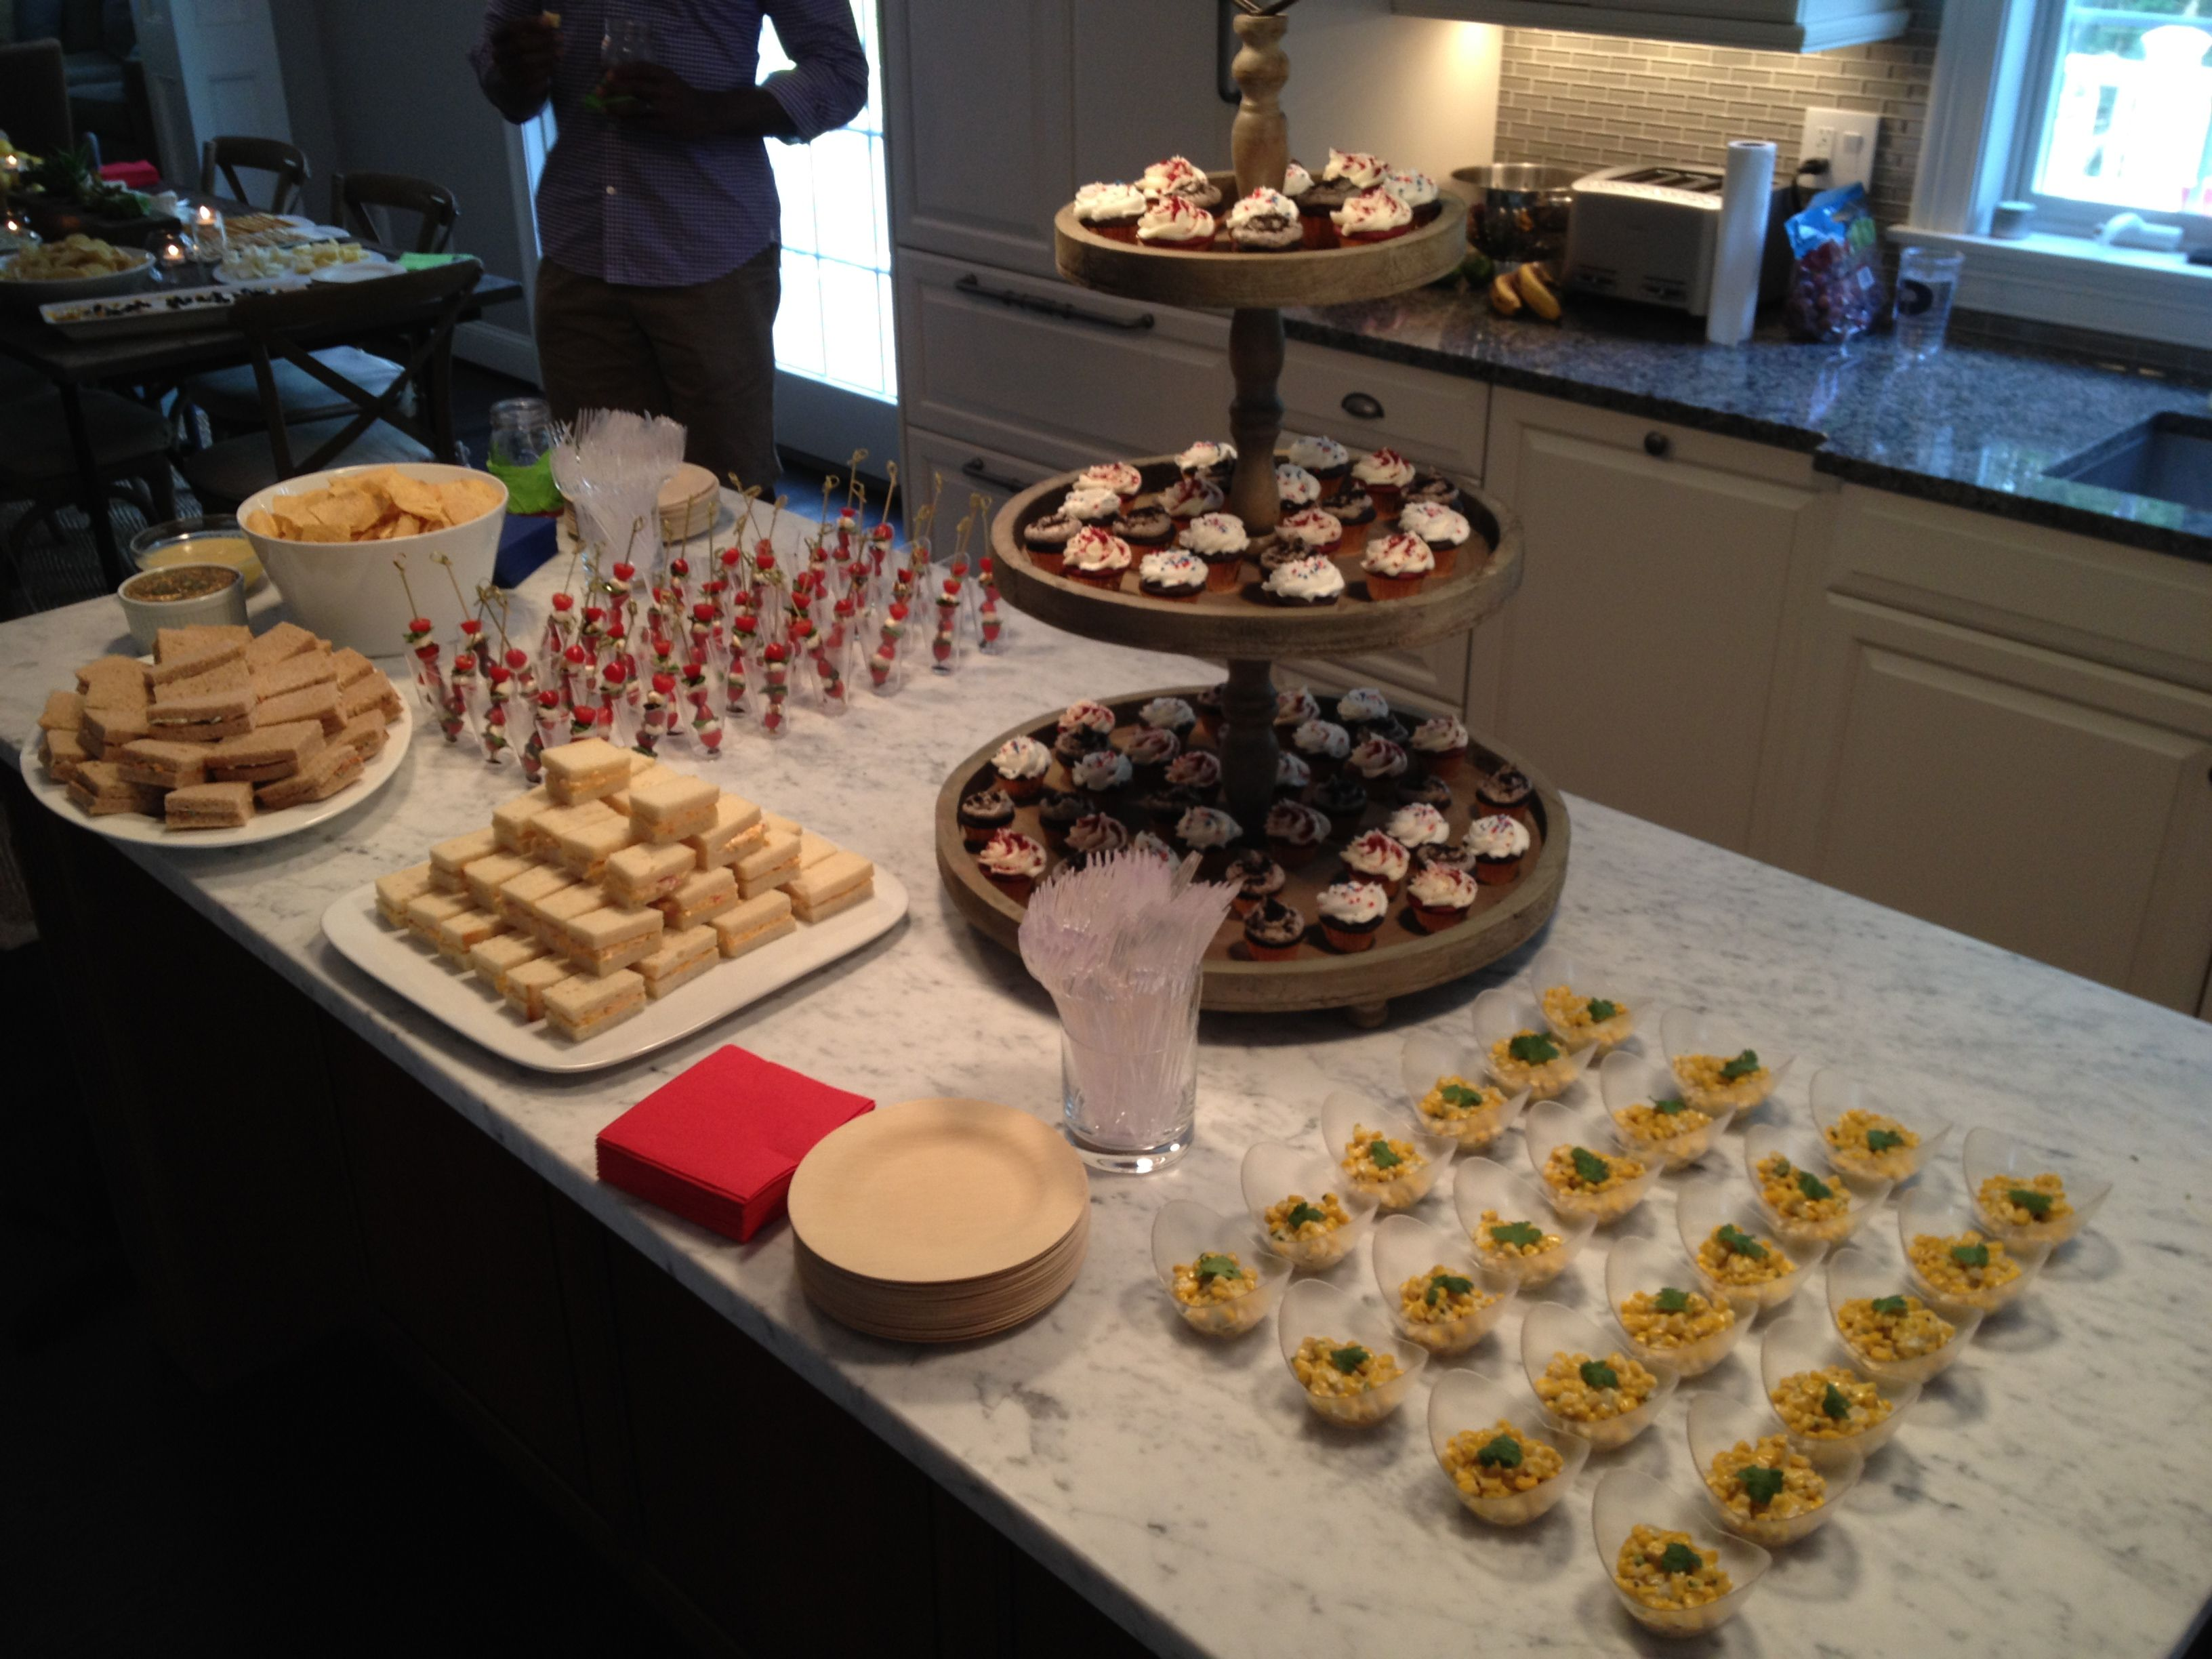 Pin by candace stroh on housewarming party ideas and foods for Housewarming food ideas